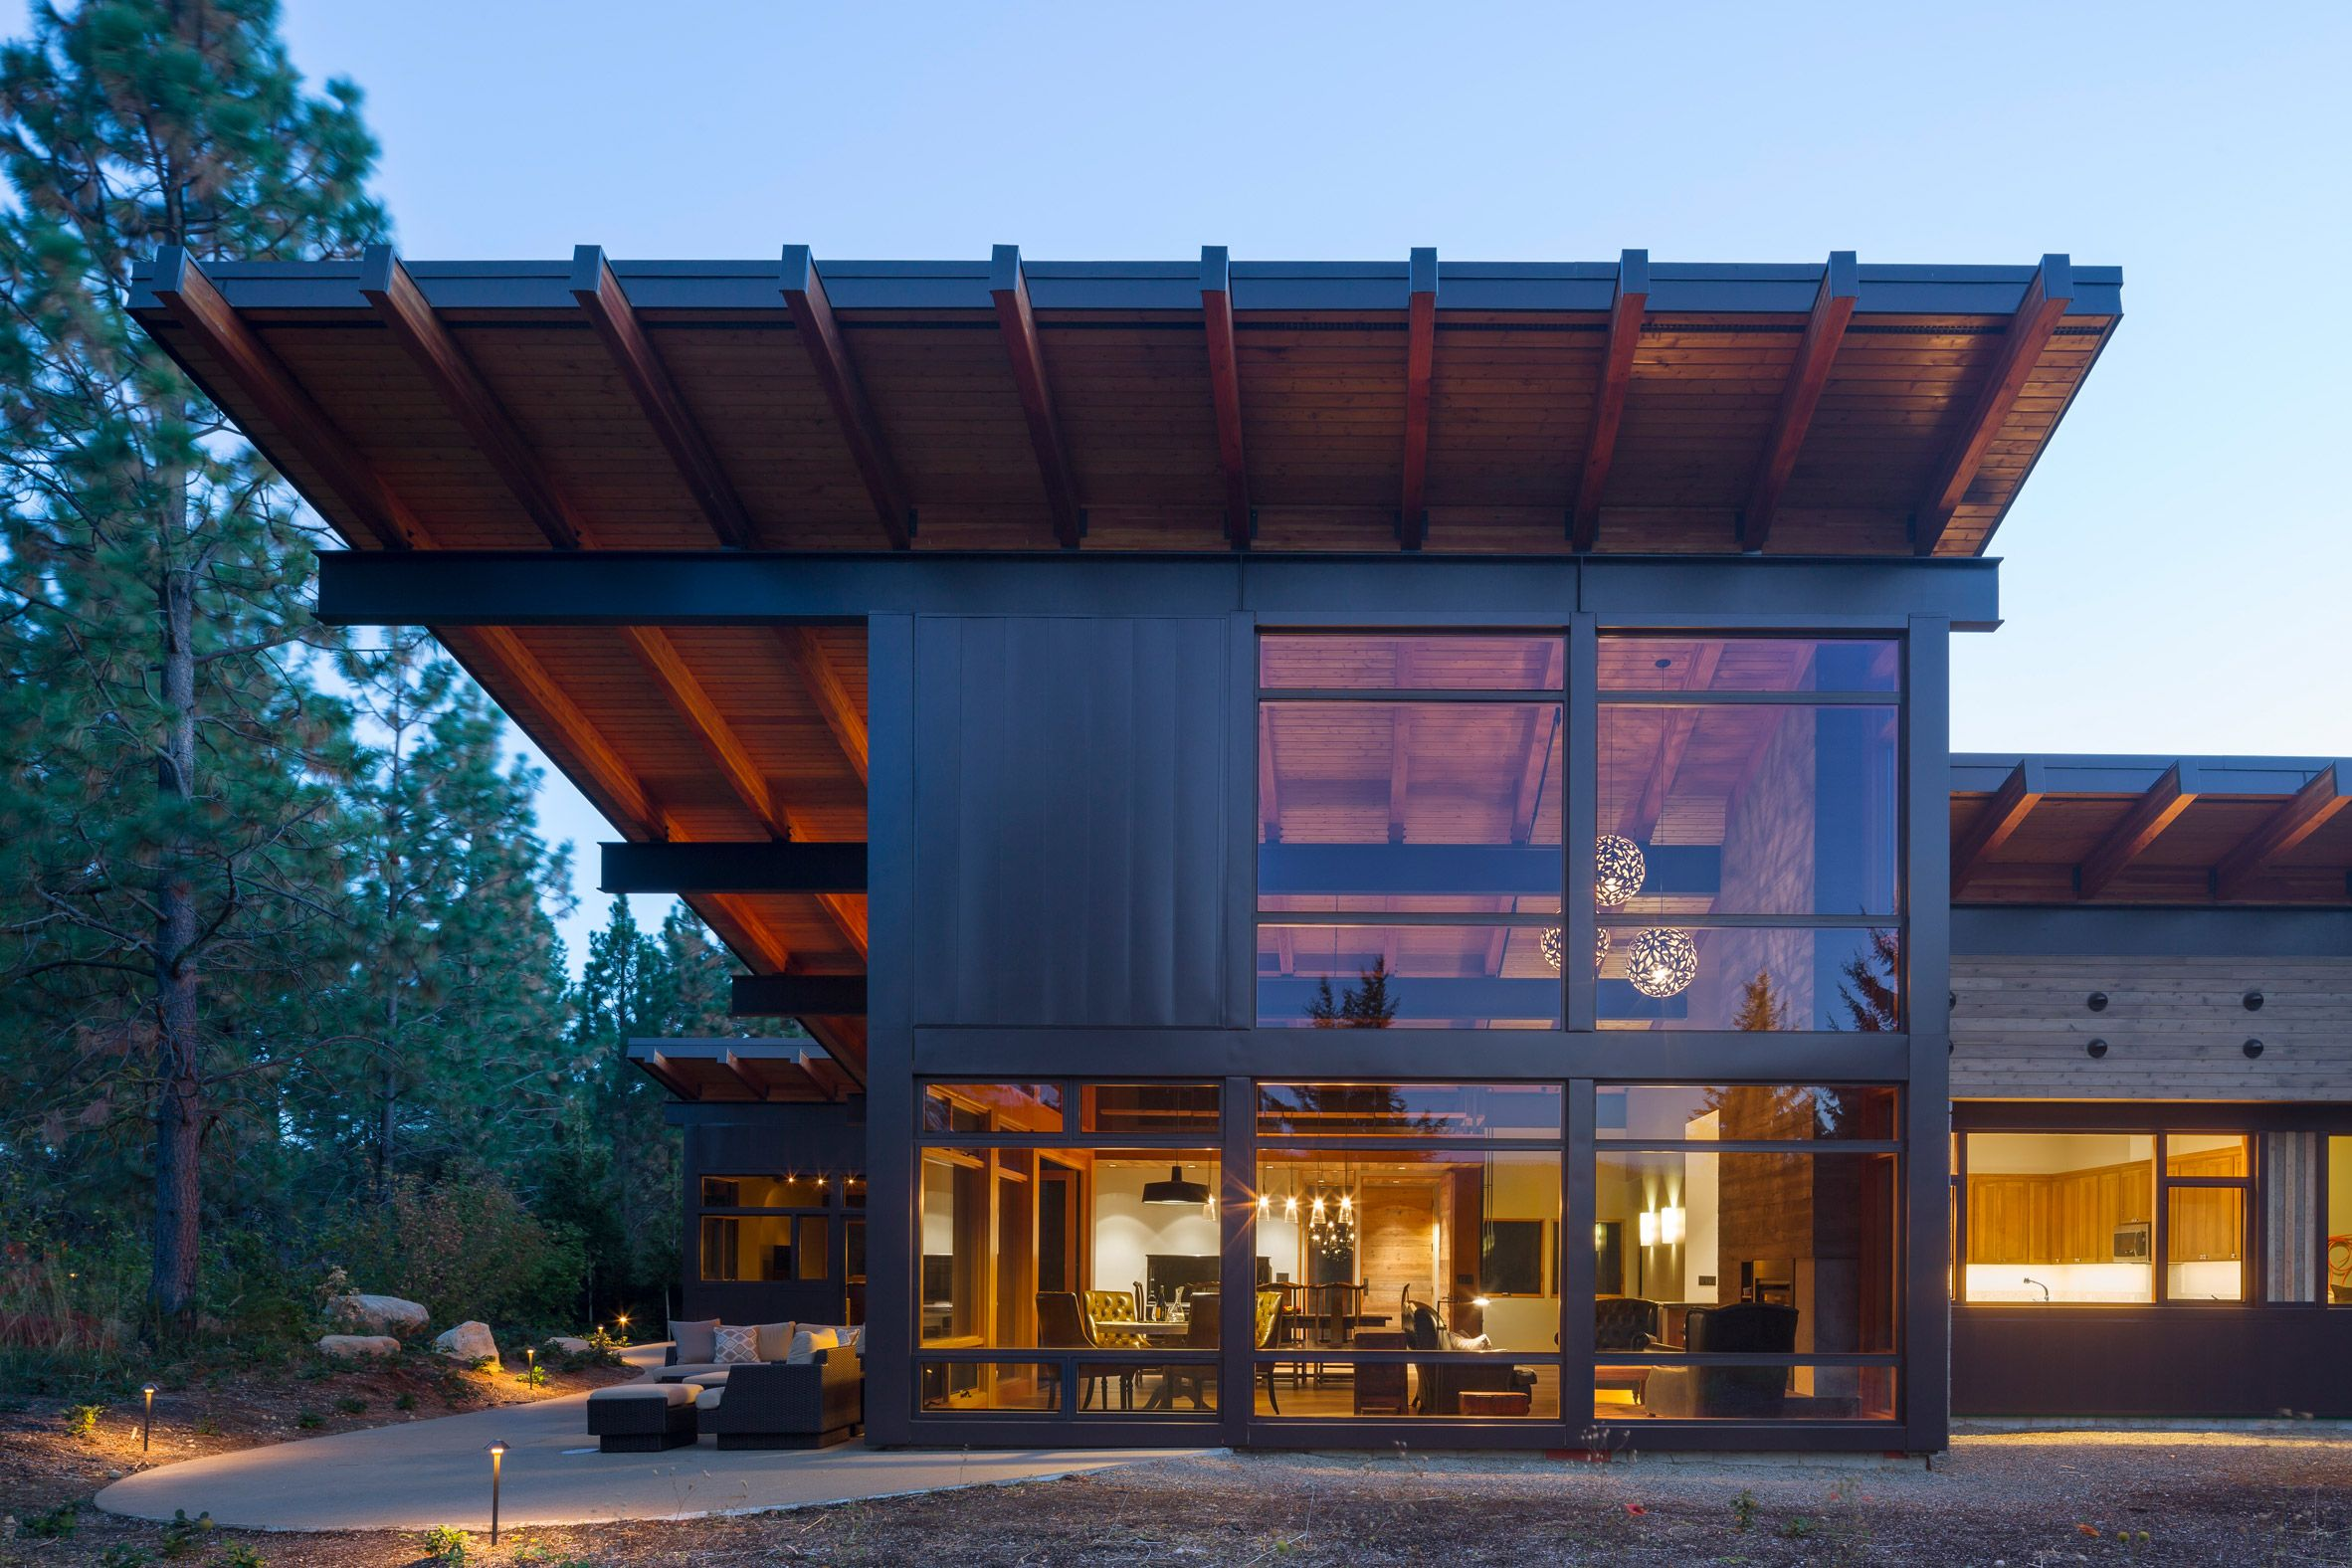 Steel beams support dramatic roof overhangs at washington state retreat by coates design